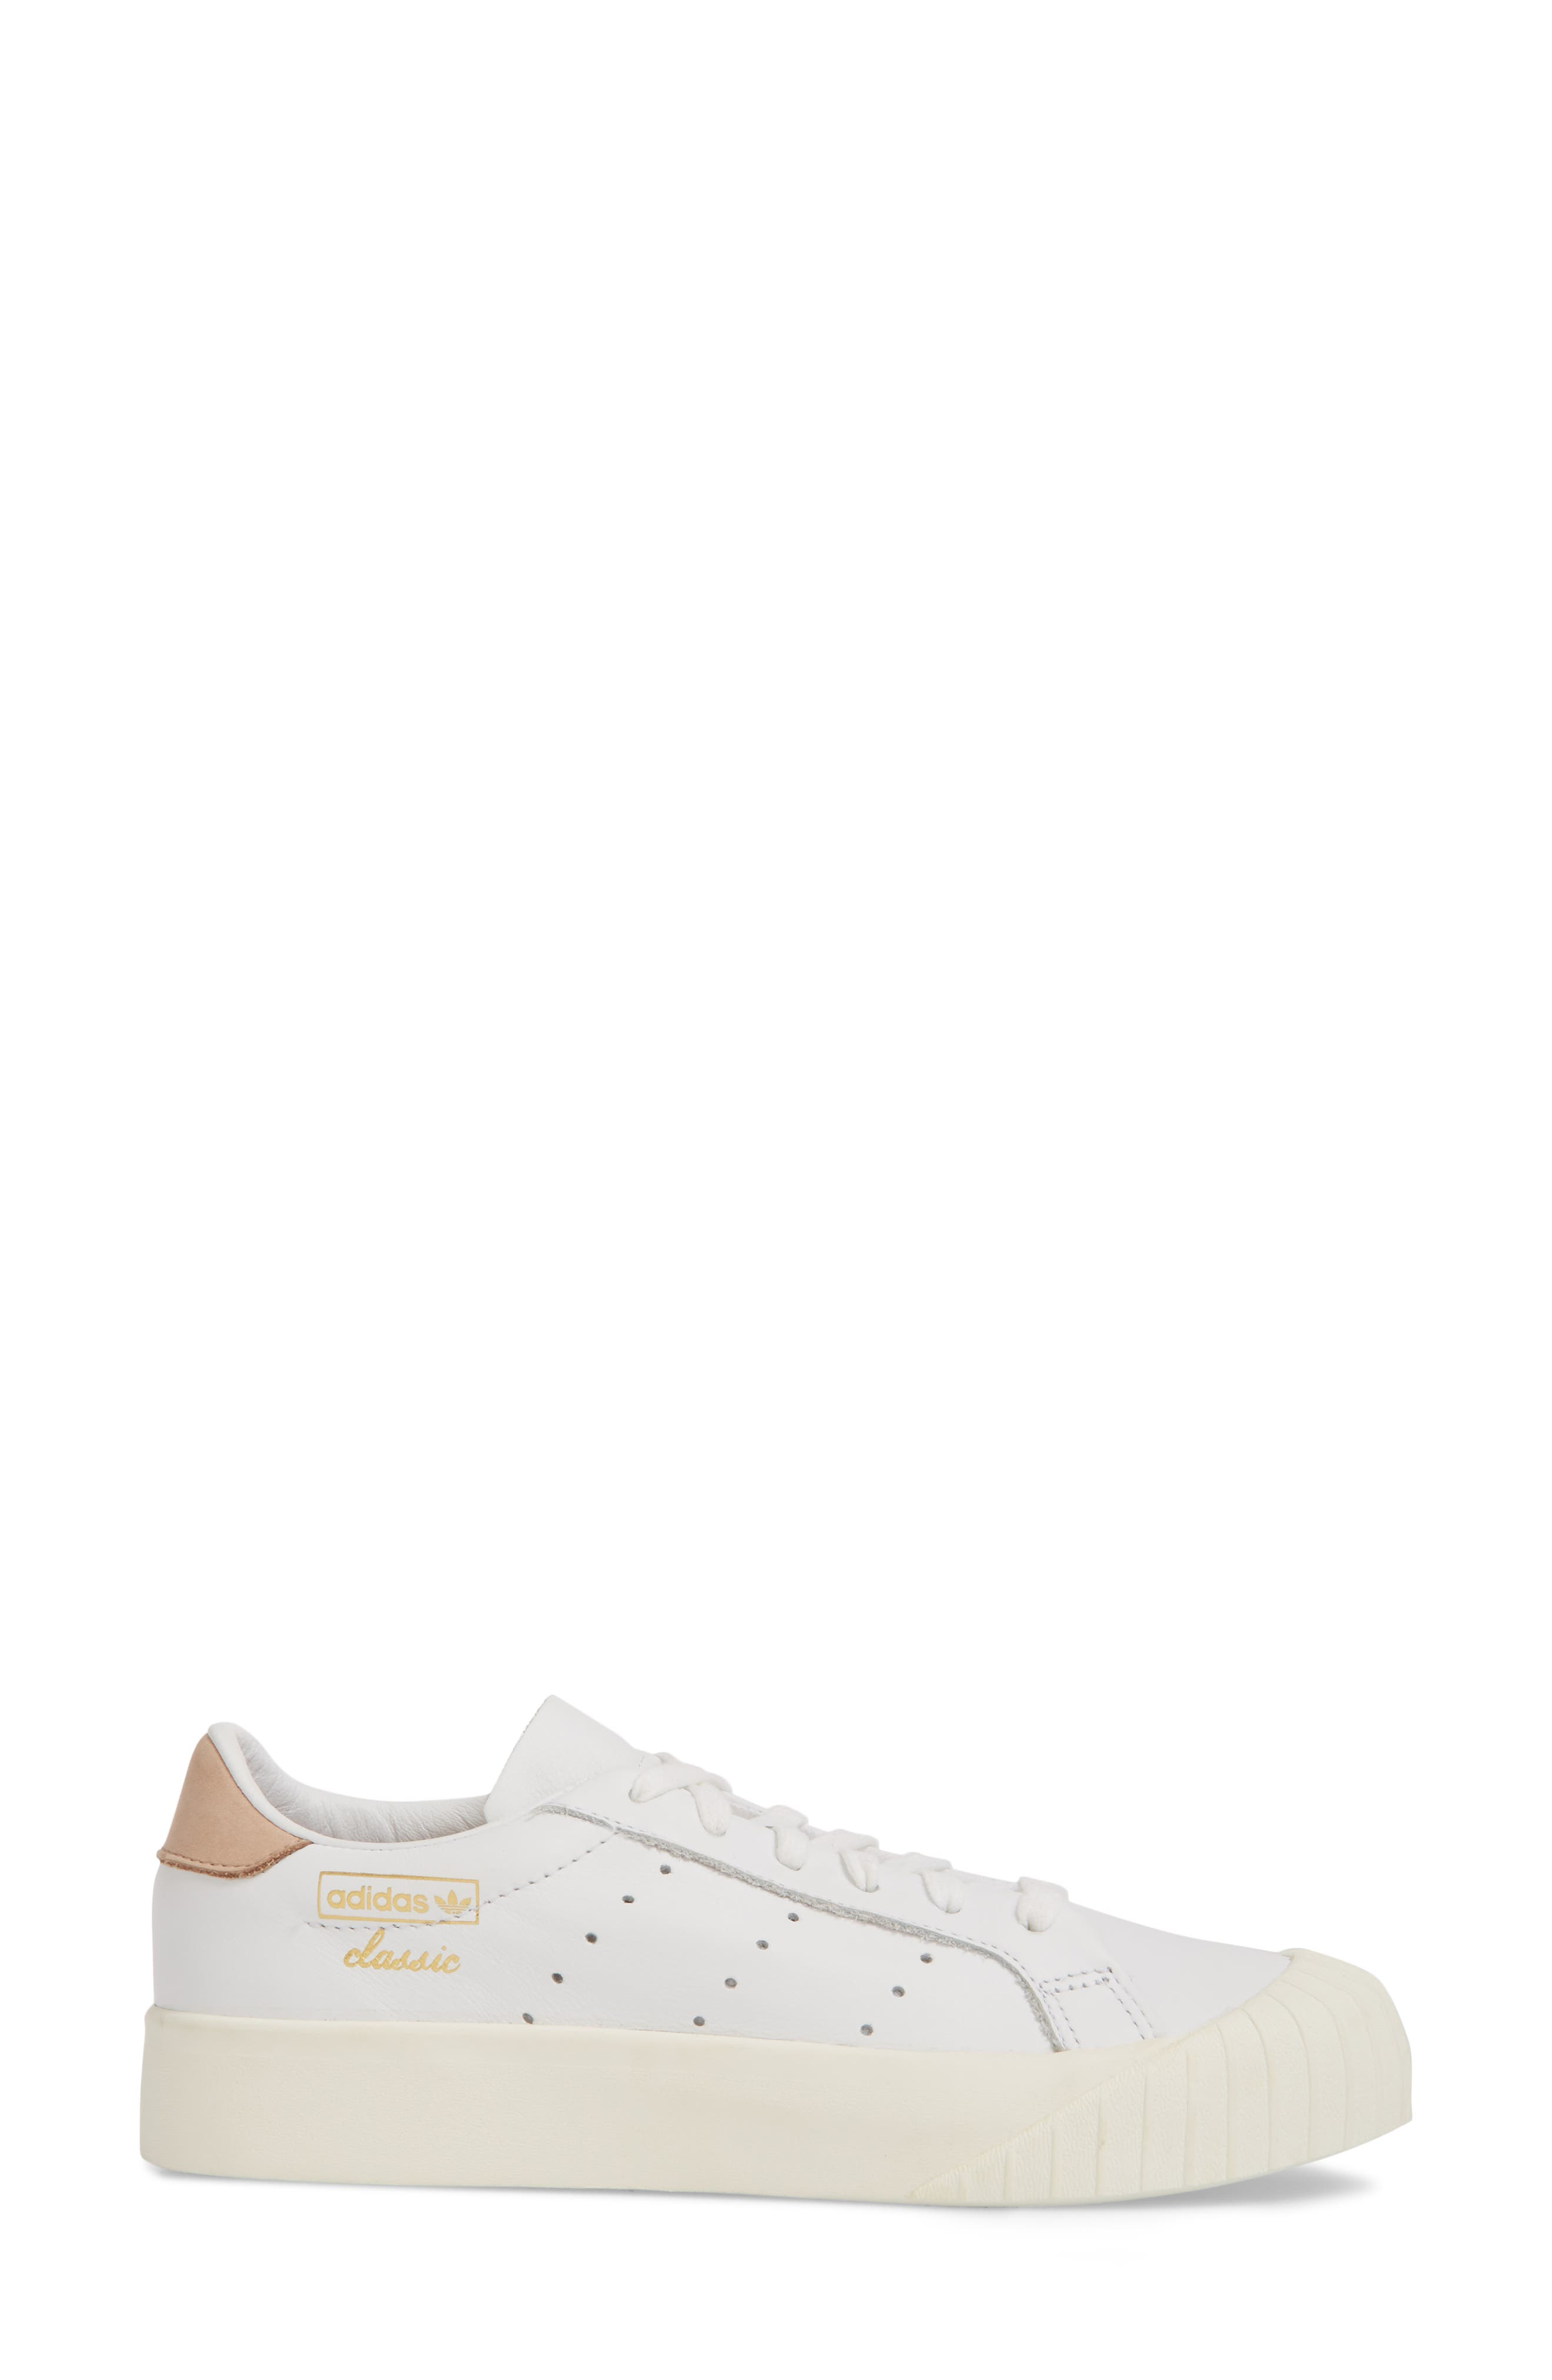 Everyn Perforated Low Top Sneaker,                             Alternate thumbnail 6, color,